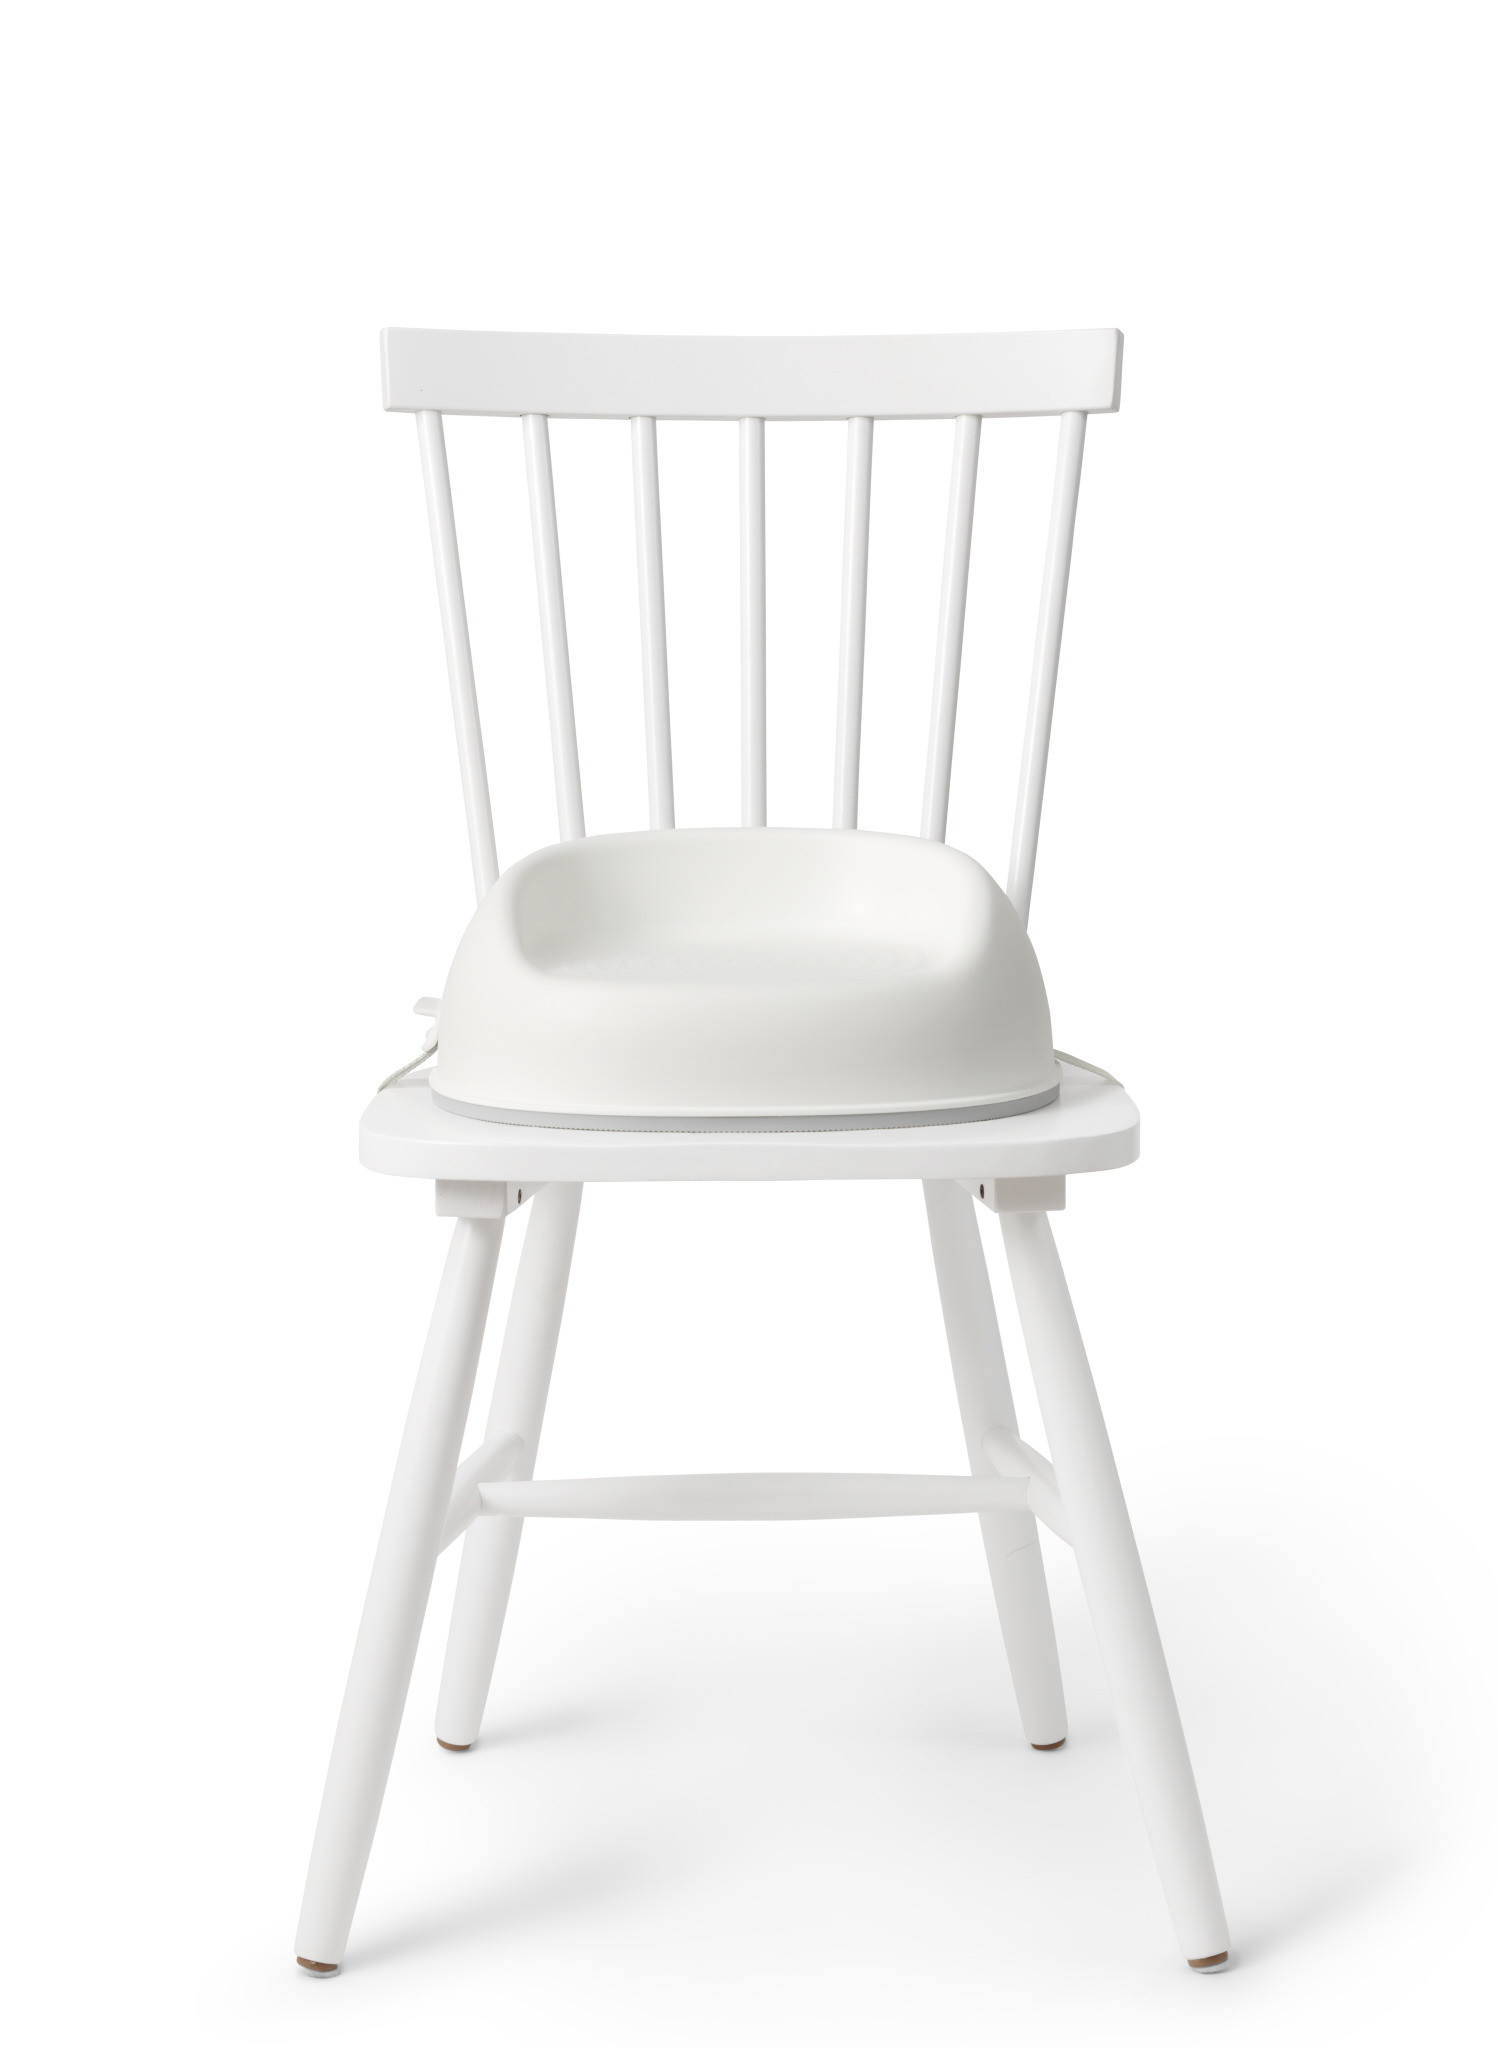 BABYBJÖRN - Booster Seat, White